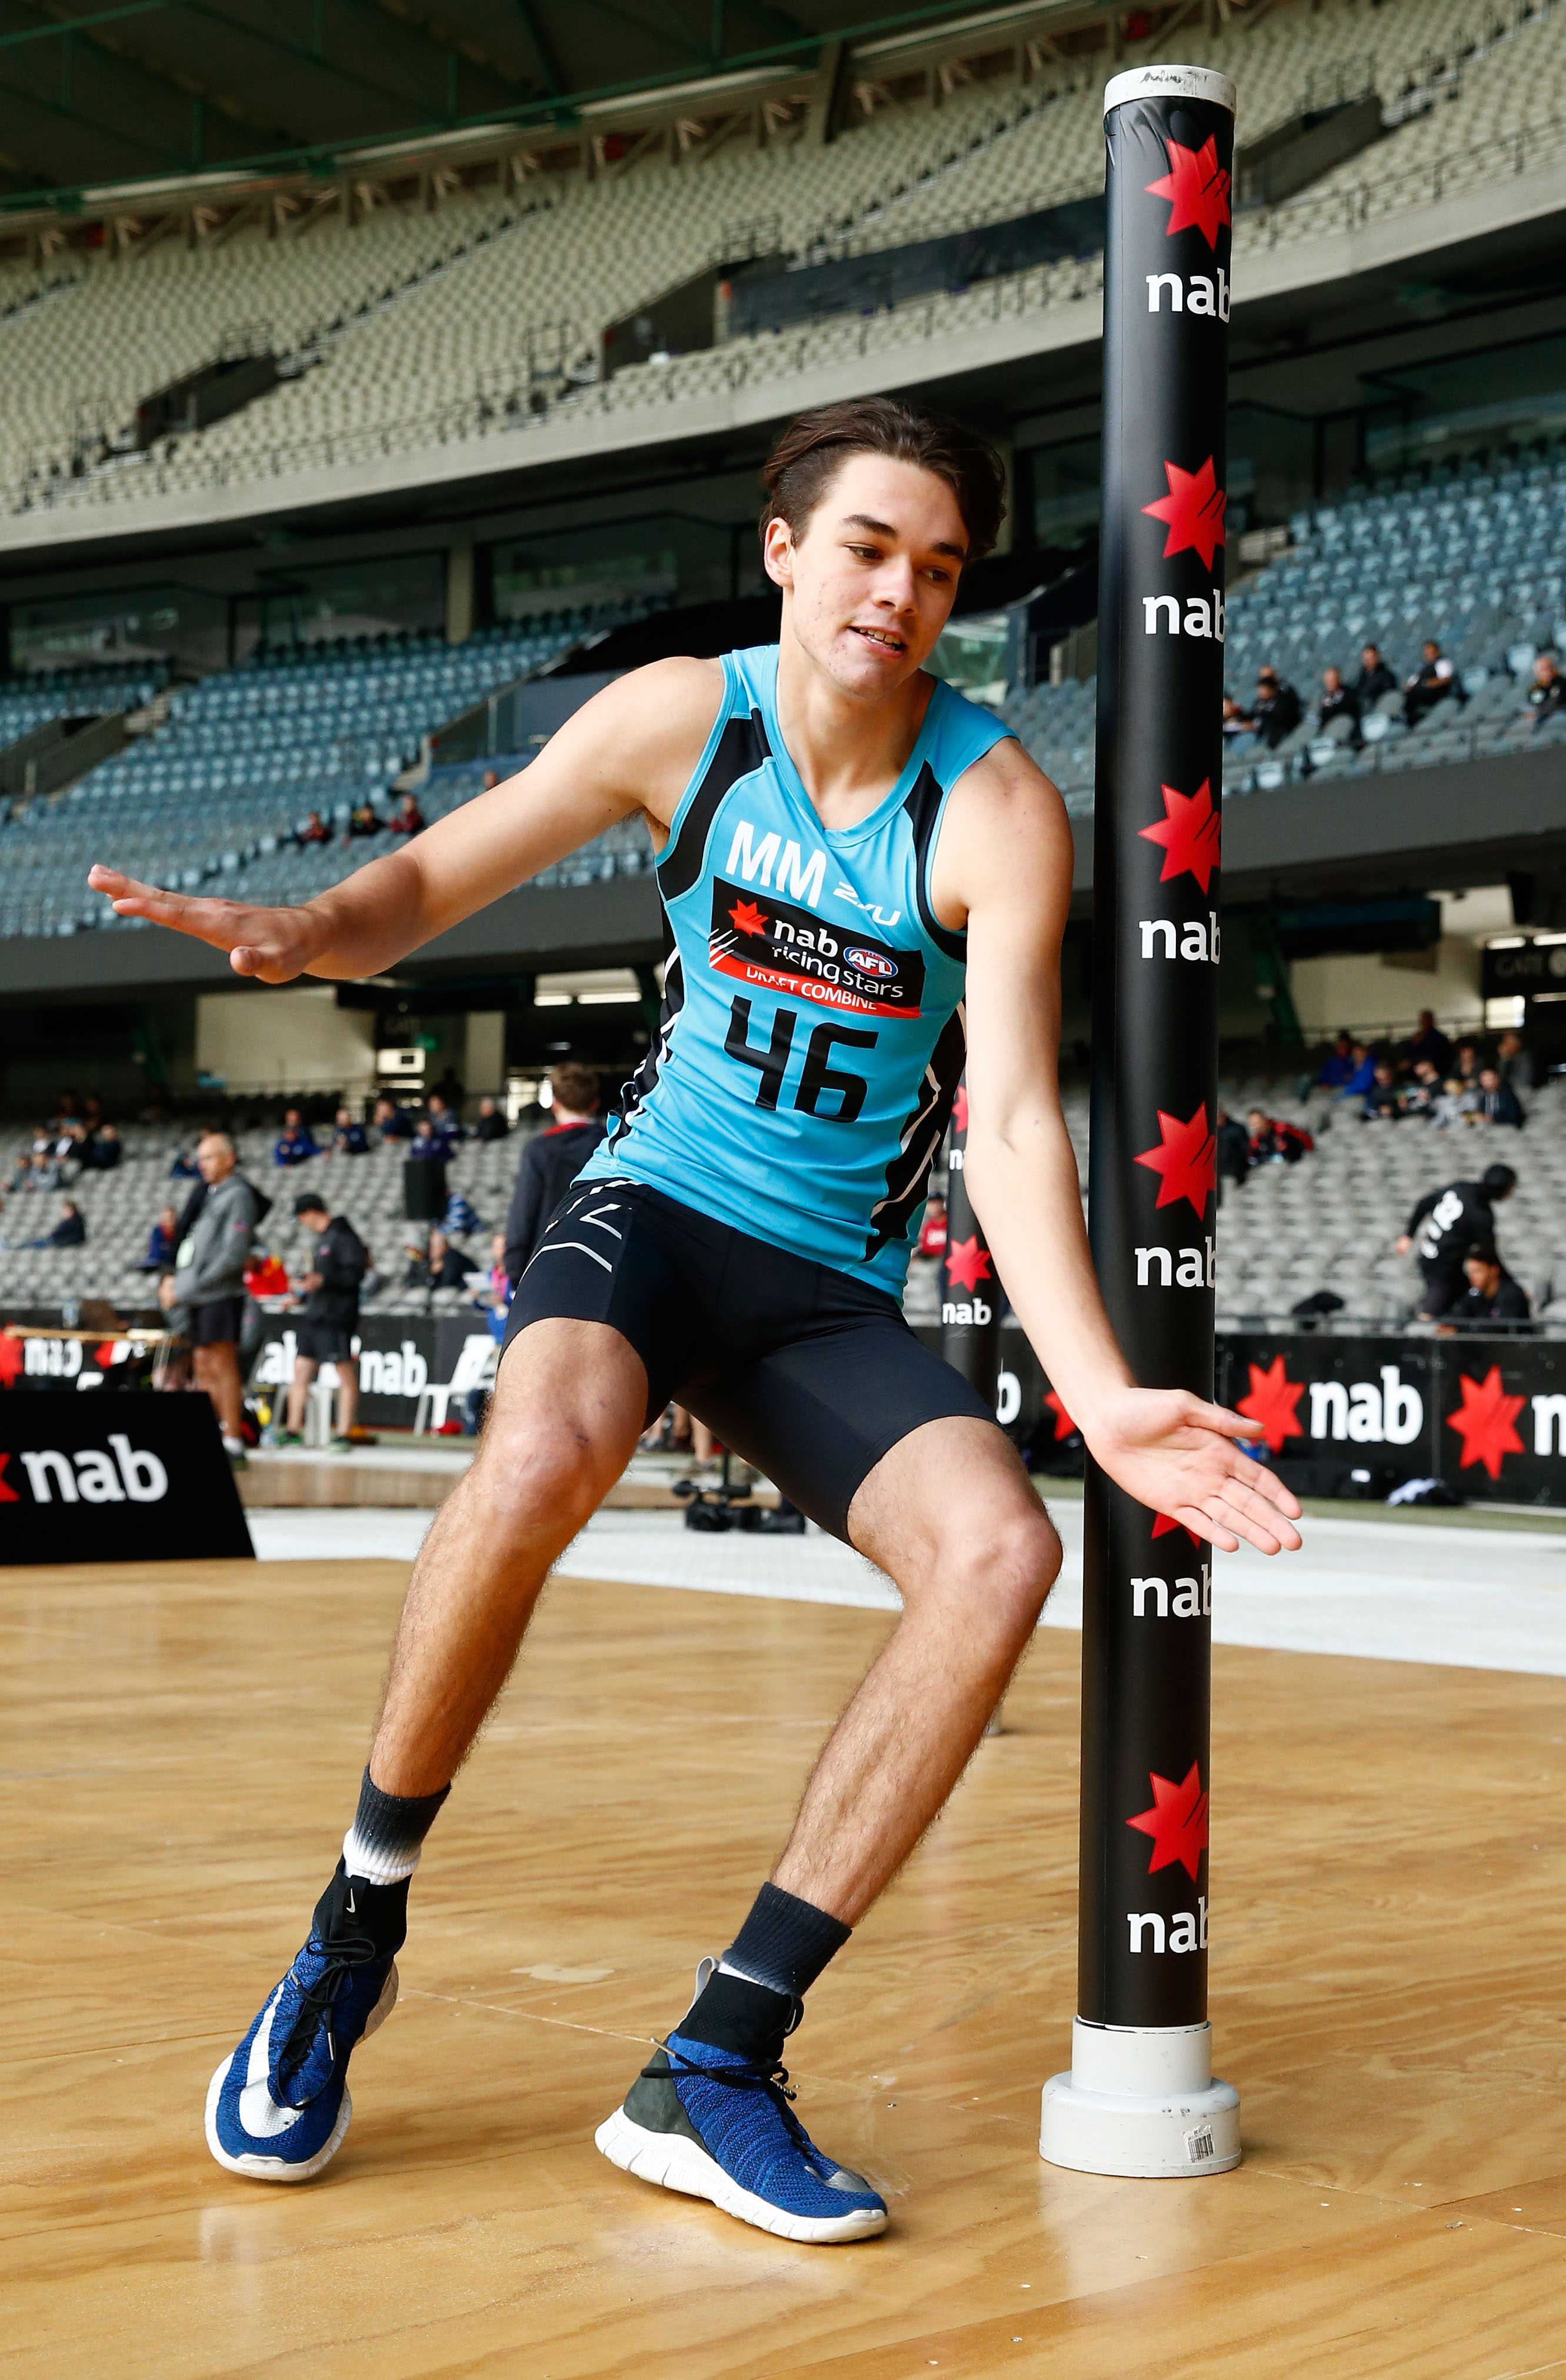 MELBOURNE, AUSTRALIA - OCTOBER 08: Josh Williams completes an agility test during the NAB AFL Draft Combine at Etihad Stadium on October 08, 2016 in Melbourne, Australia. (Photo by Adam Trafford/AFL Media)